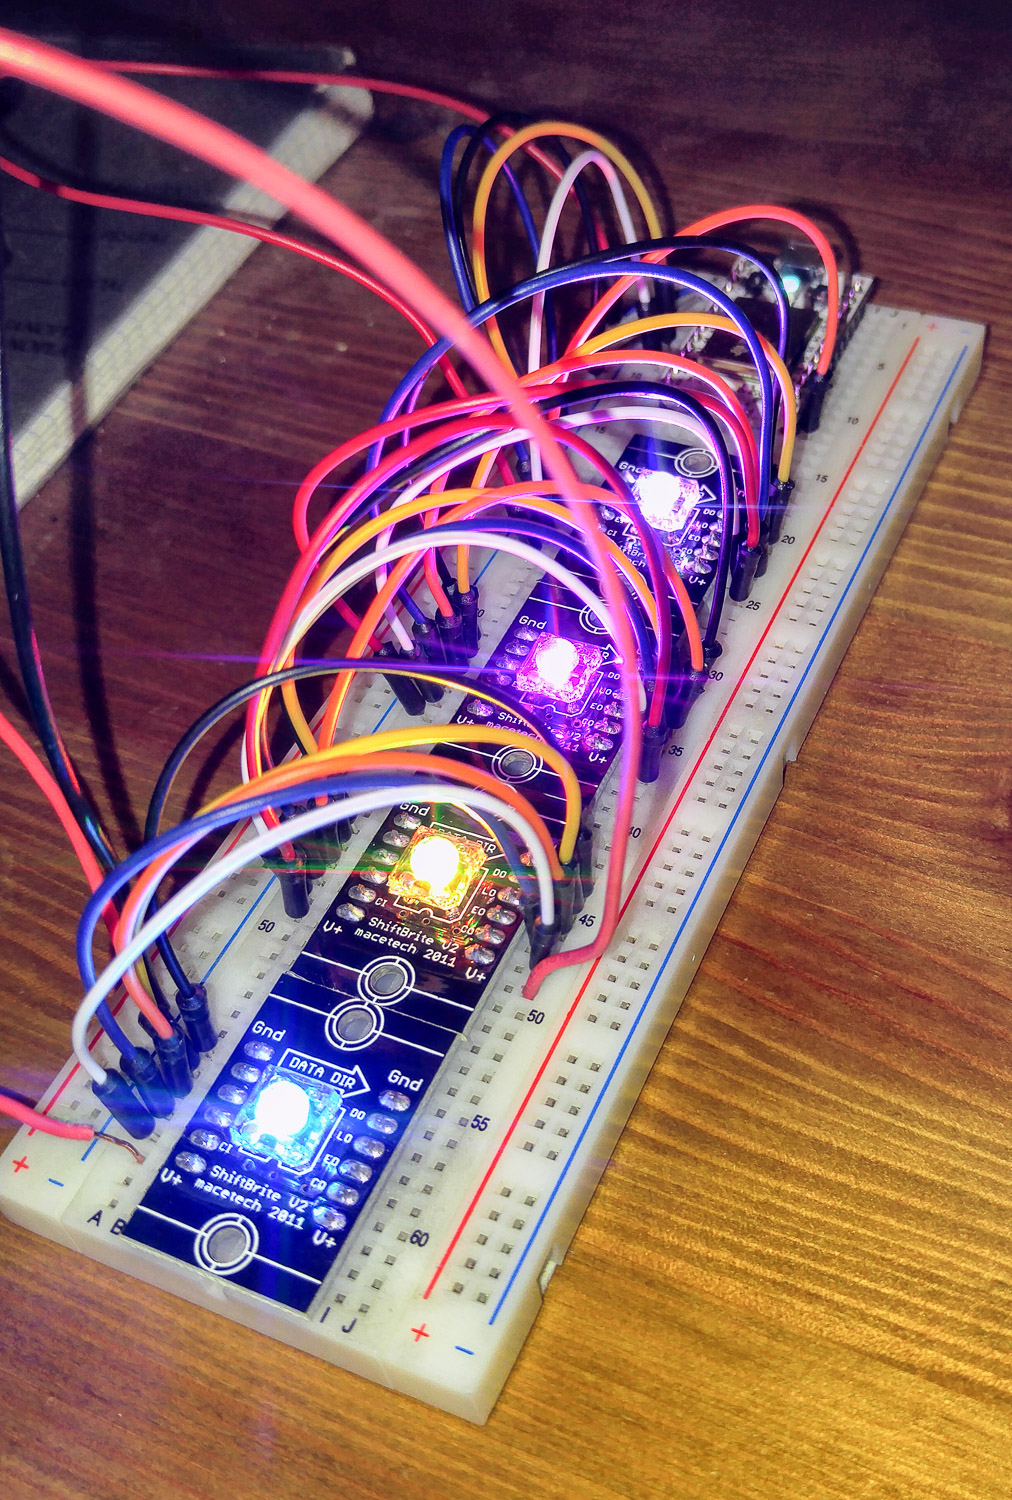 Breadboard chain of ShiftBrites powered by a Particle Core